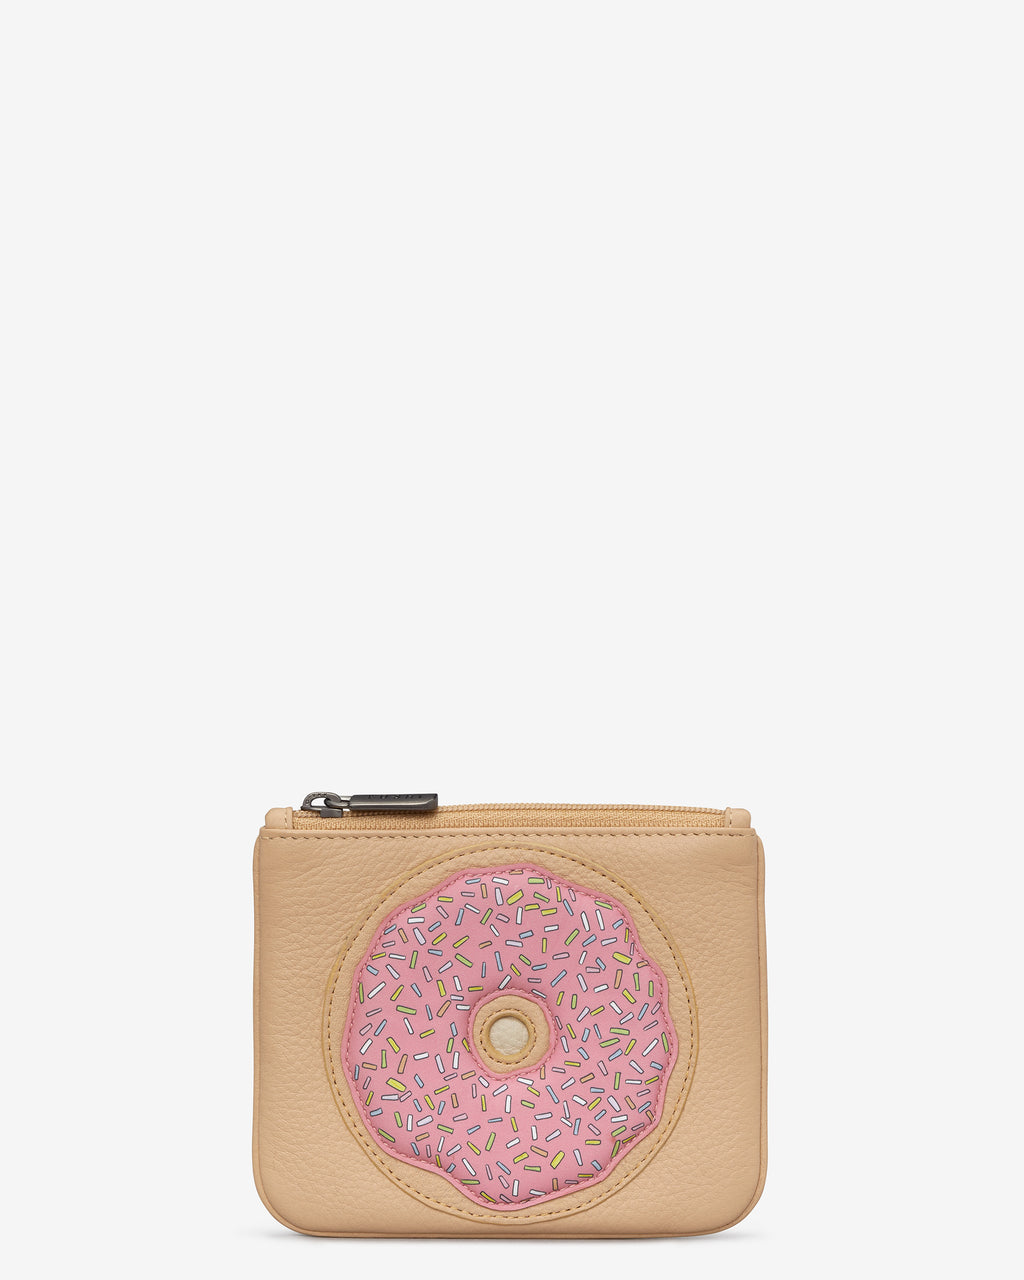 Donut Leather Zip Top Purse